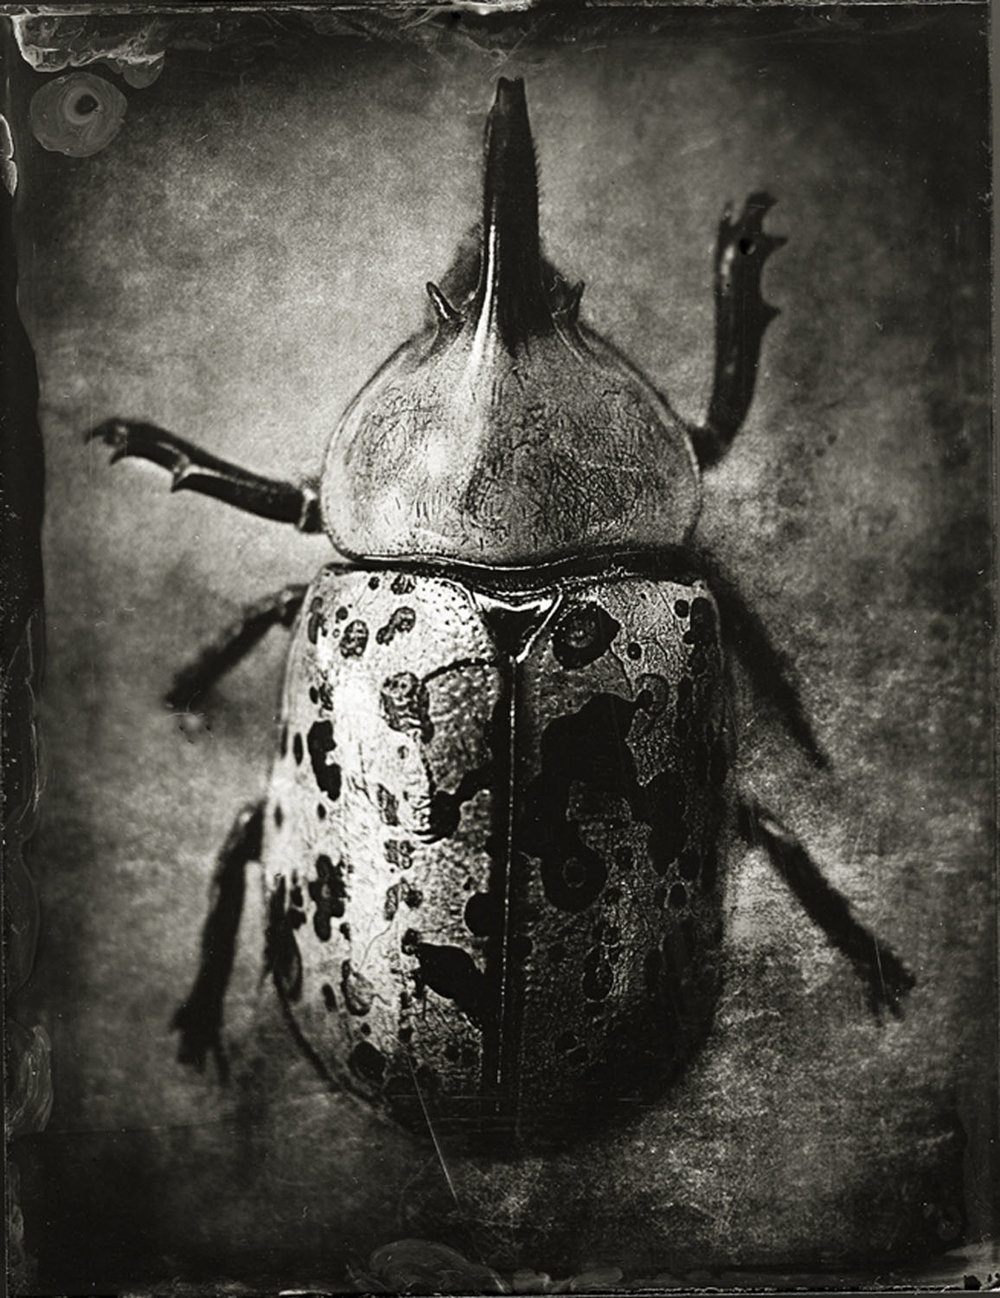 "Beetle - By: Gary Geboy  www.garygeboyphotography.com   I was working on a project called ""Organics"", shooting found flora and printing primarily on platinum/palladium, when I came across this little gem: a rhinoceros beetle.  He was quite fragile, having been lying in the street for some time before I came along. And what better way to preserve such fragility than through another fragile medium: wet plate collodion.  My experience was limited with collodion, but I had a beat-up, full plate camera and plenty of glass. Luckily, with my coke-bottle lens and just-long- enough bellows, I could get a nice enlargement. After a number of tries, I hit it and the result is this beautiful specimen preserved forever. The plates after that where ok, but this was the one. A little while later I had a solo show of my Organics series and a number of plates from the series as well. Unfortunately, on the last day of the show, someone ripped the beetle from the wall and it has never been seen since.  Winning the prize for best still life has a double satisfaction for me. First, it's always a great honor to be recognized for the effort put into images. Second, through this prize, a gem of a creature gets the last word – no thief can steal true beauty."